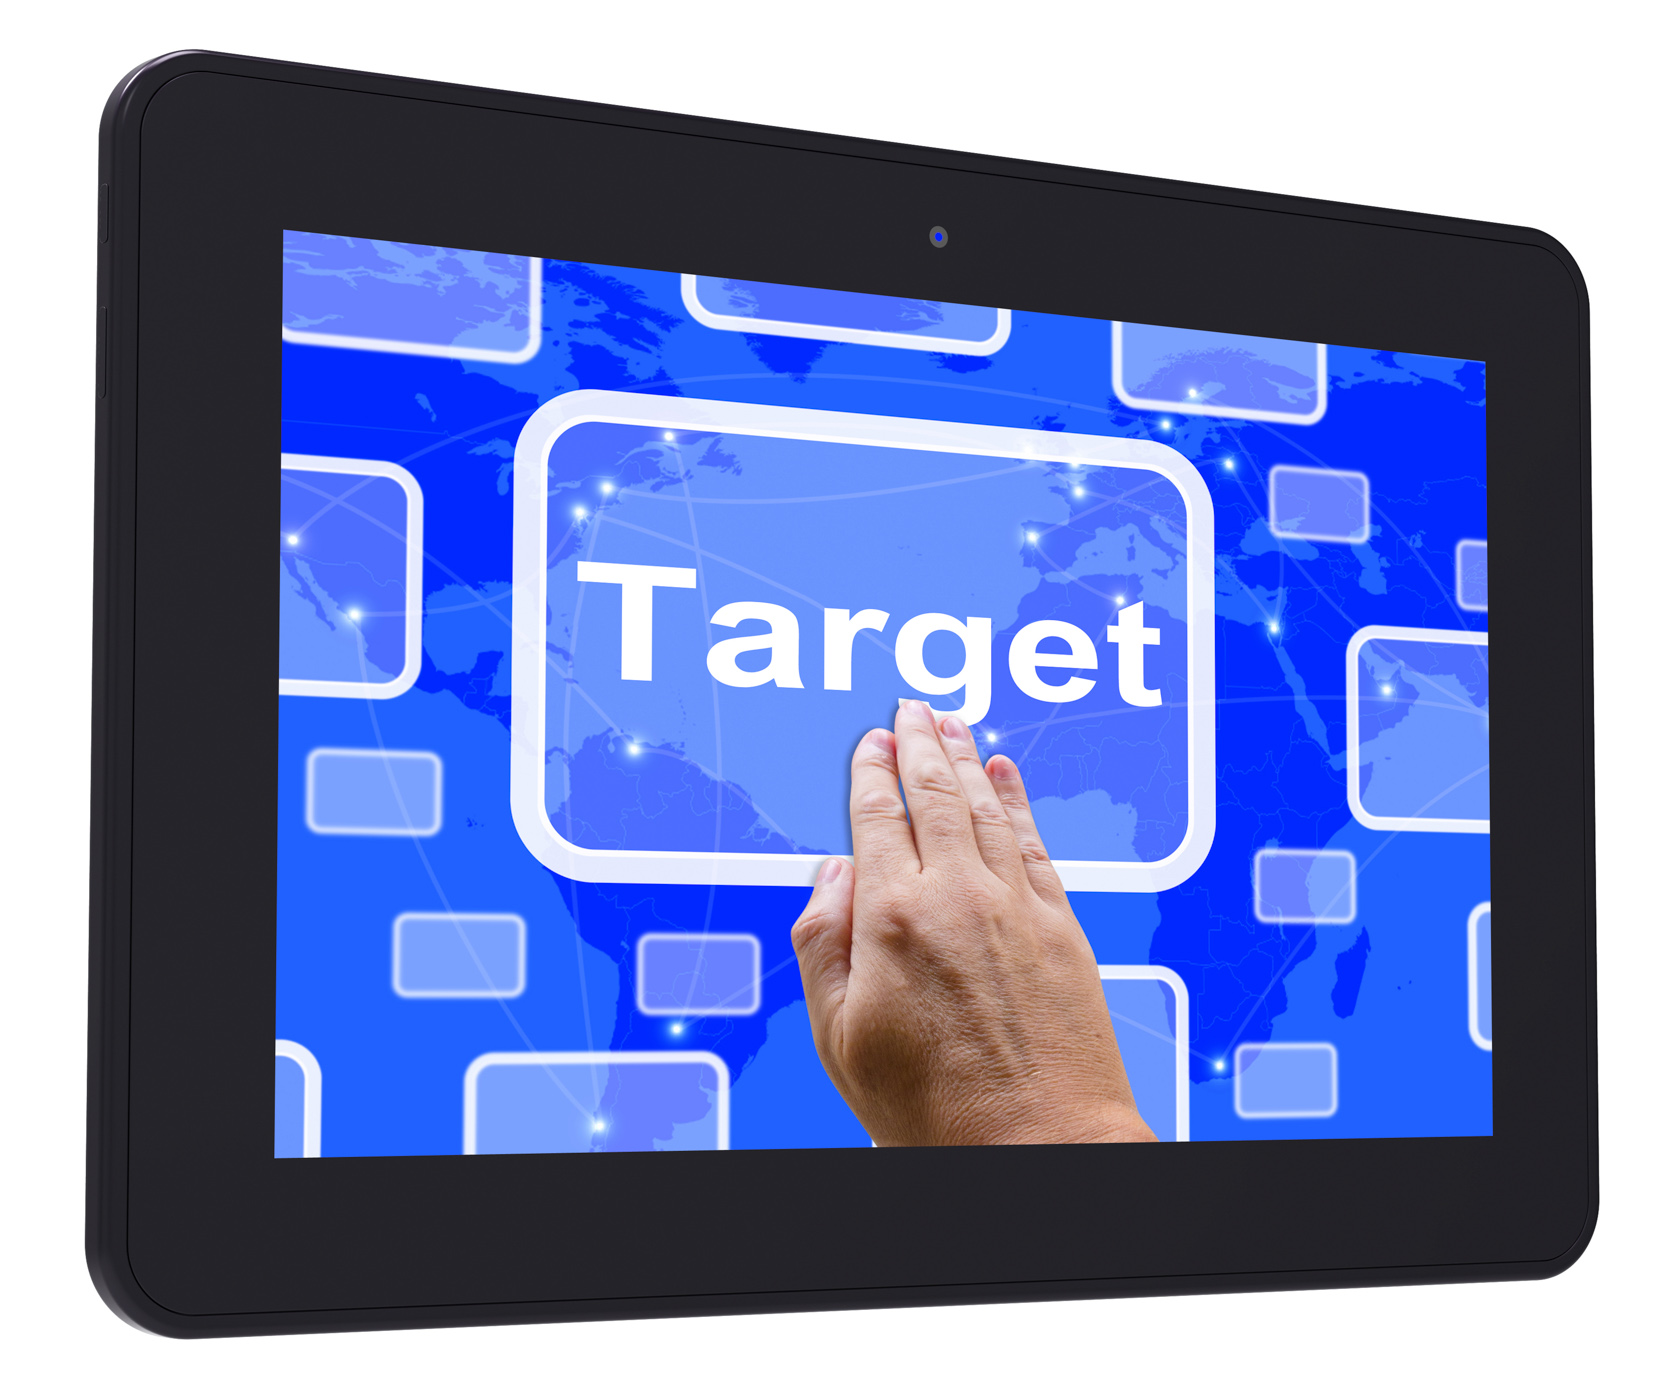 Target tablet touch screen shows aims objectives or aspirations photo